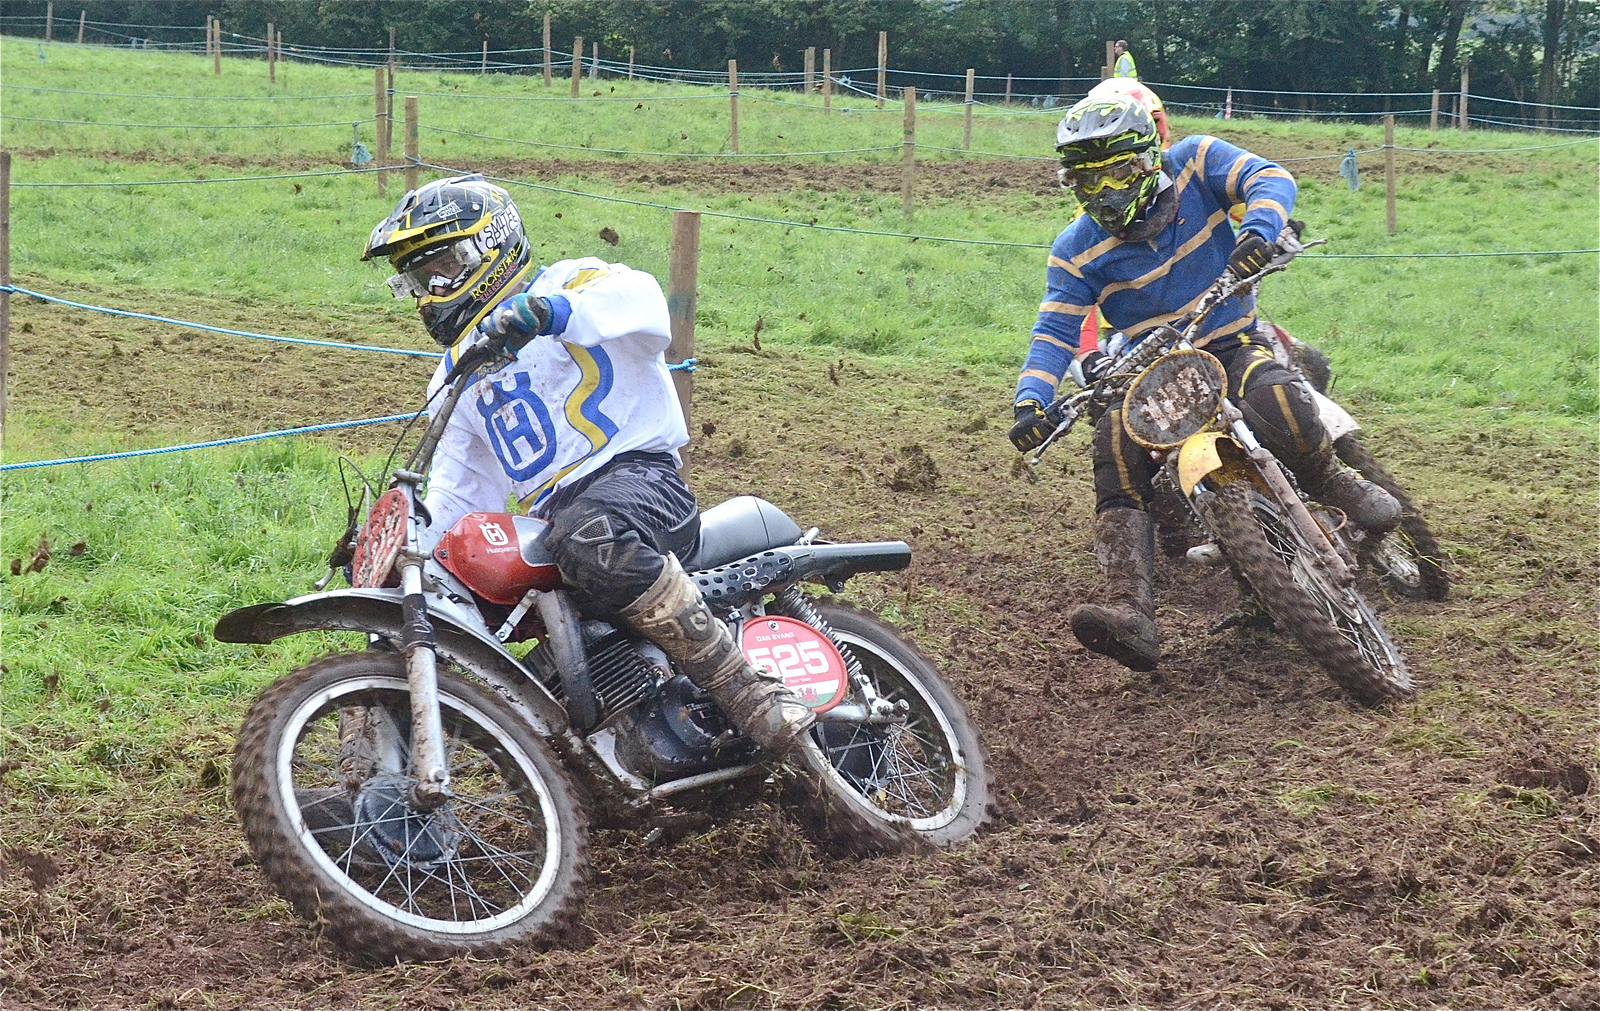 Llanthony Classic Scramble Photos September 2015 classicdirtbikerider.com..16